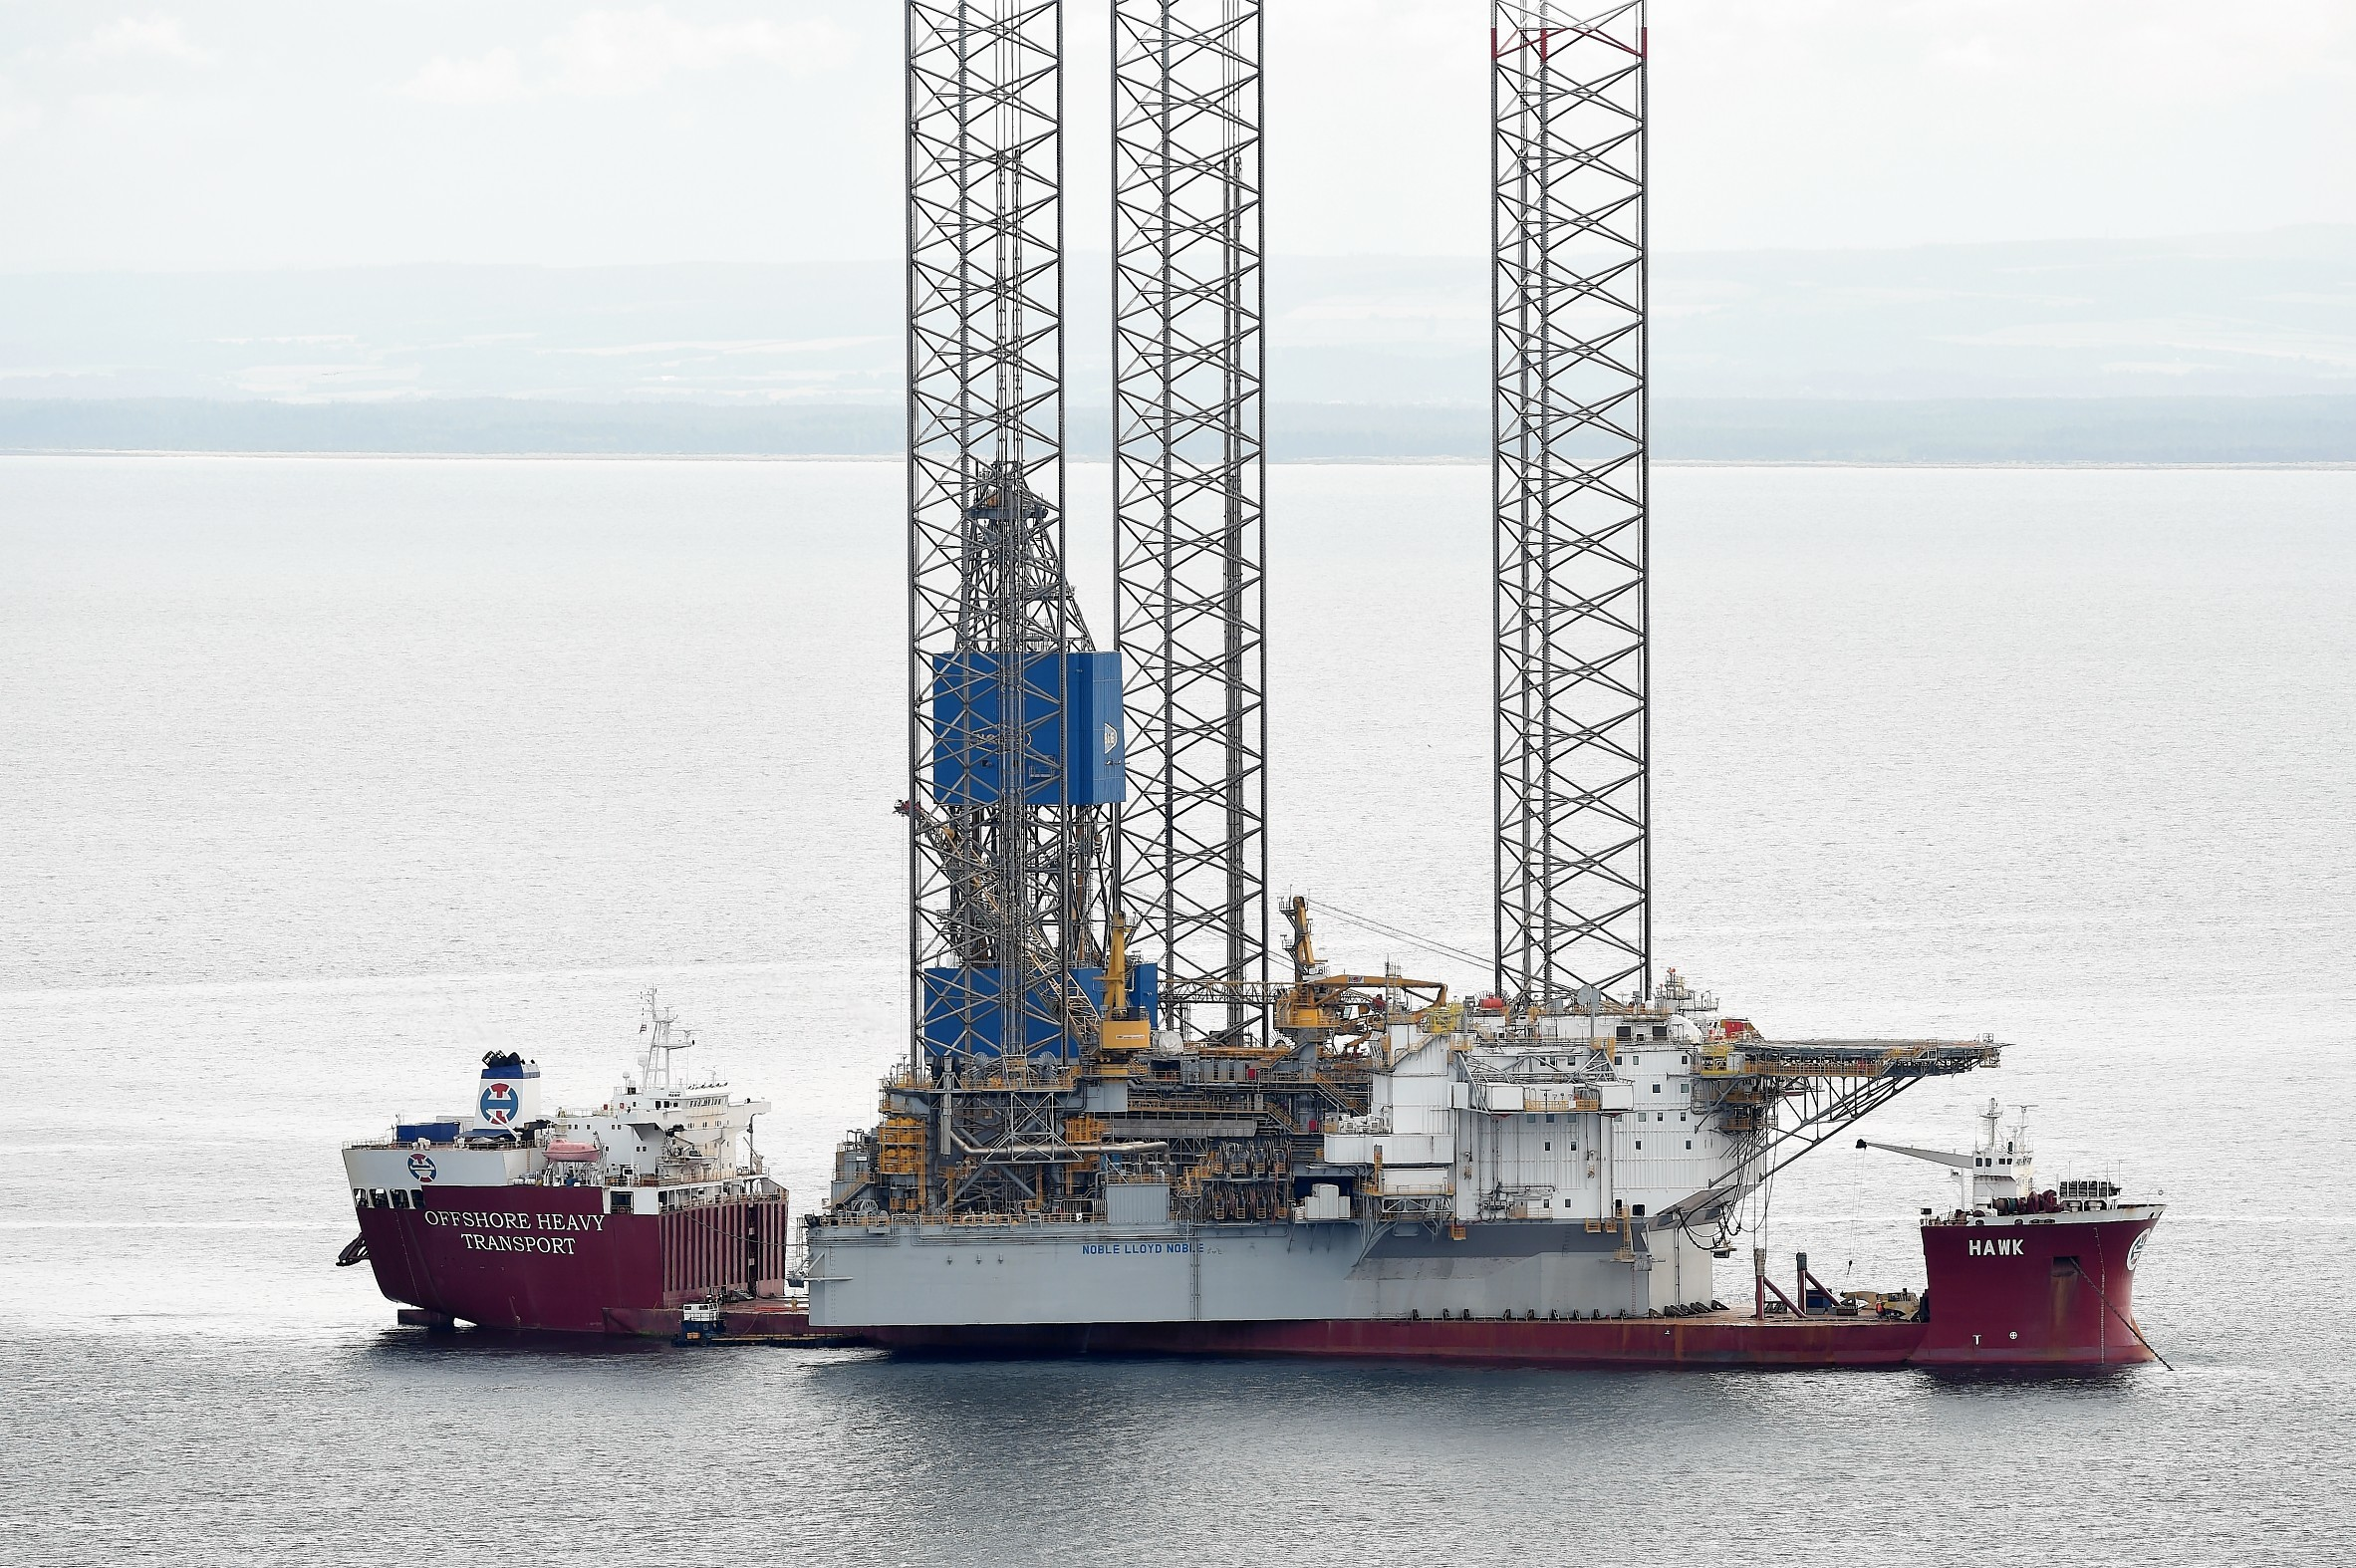 The large jack up oil rig 'Noble Lord Noble' sits on the deck of the Norwegian heavy lift ship 'Hawk' in the Moray Firth before entering the Cromarty Firth yesterday (Fri).